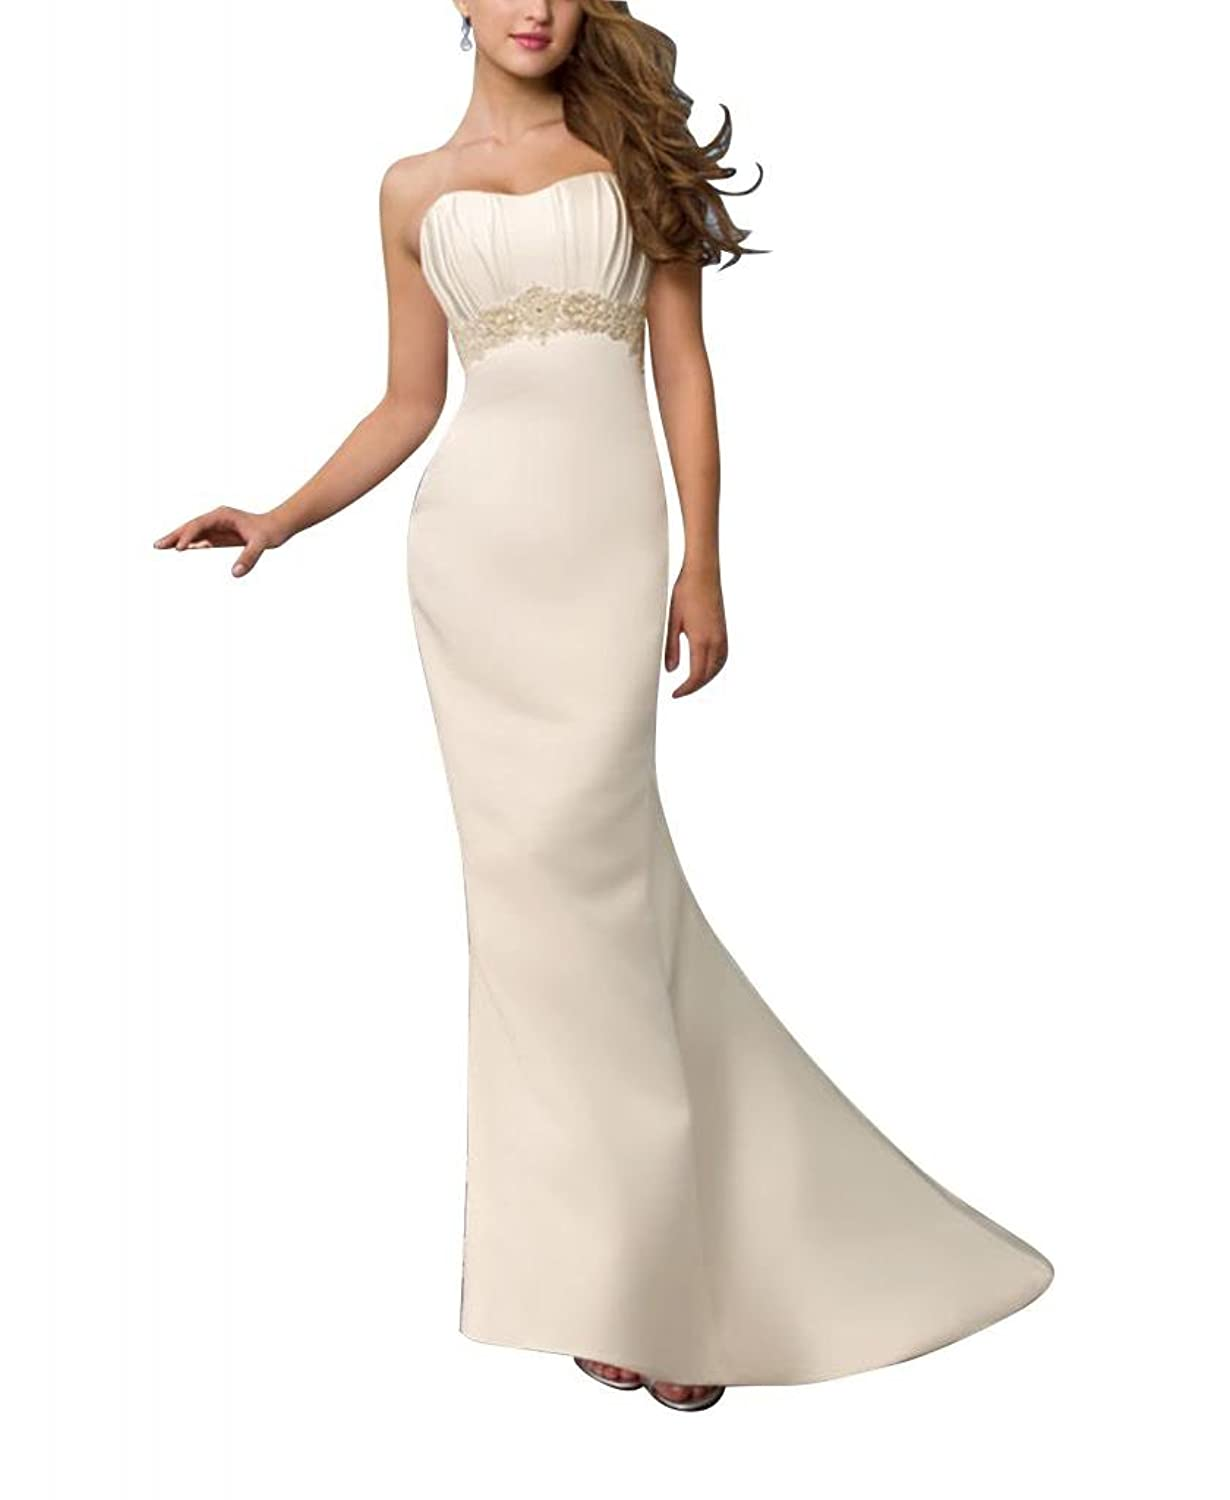 GEORGE BRIDE Simple Strapless Sheath Satin Court Train Wedding Dress